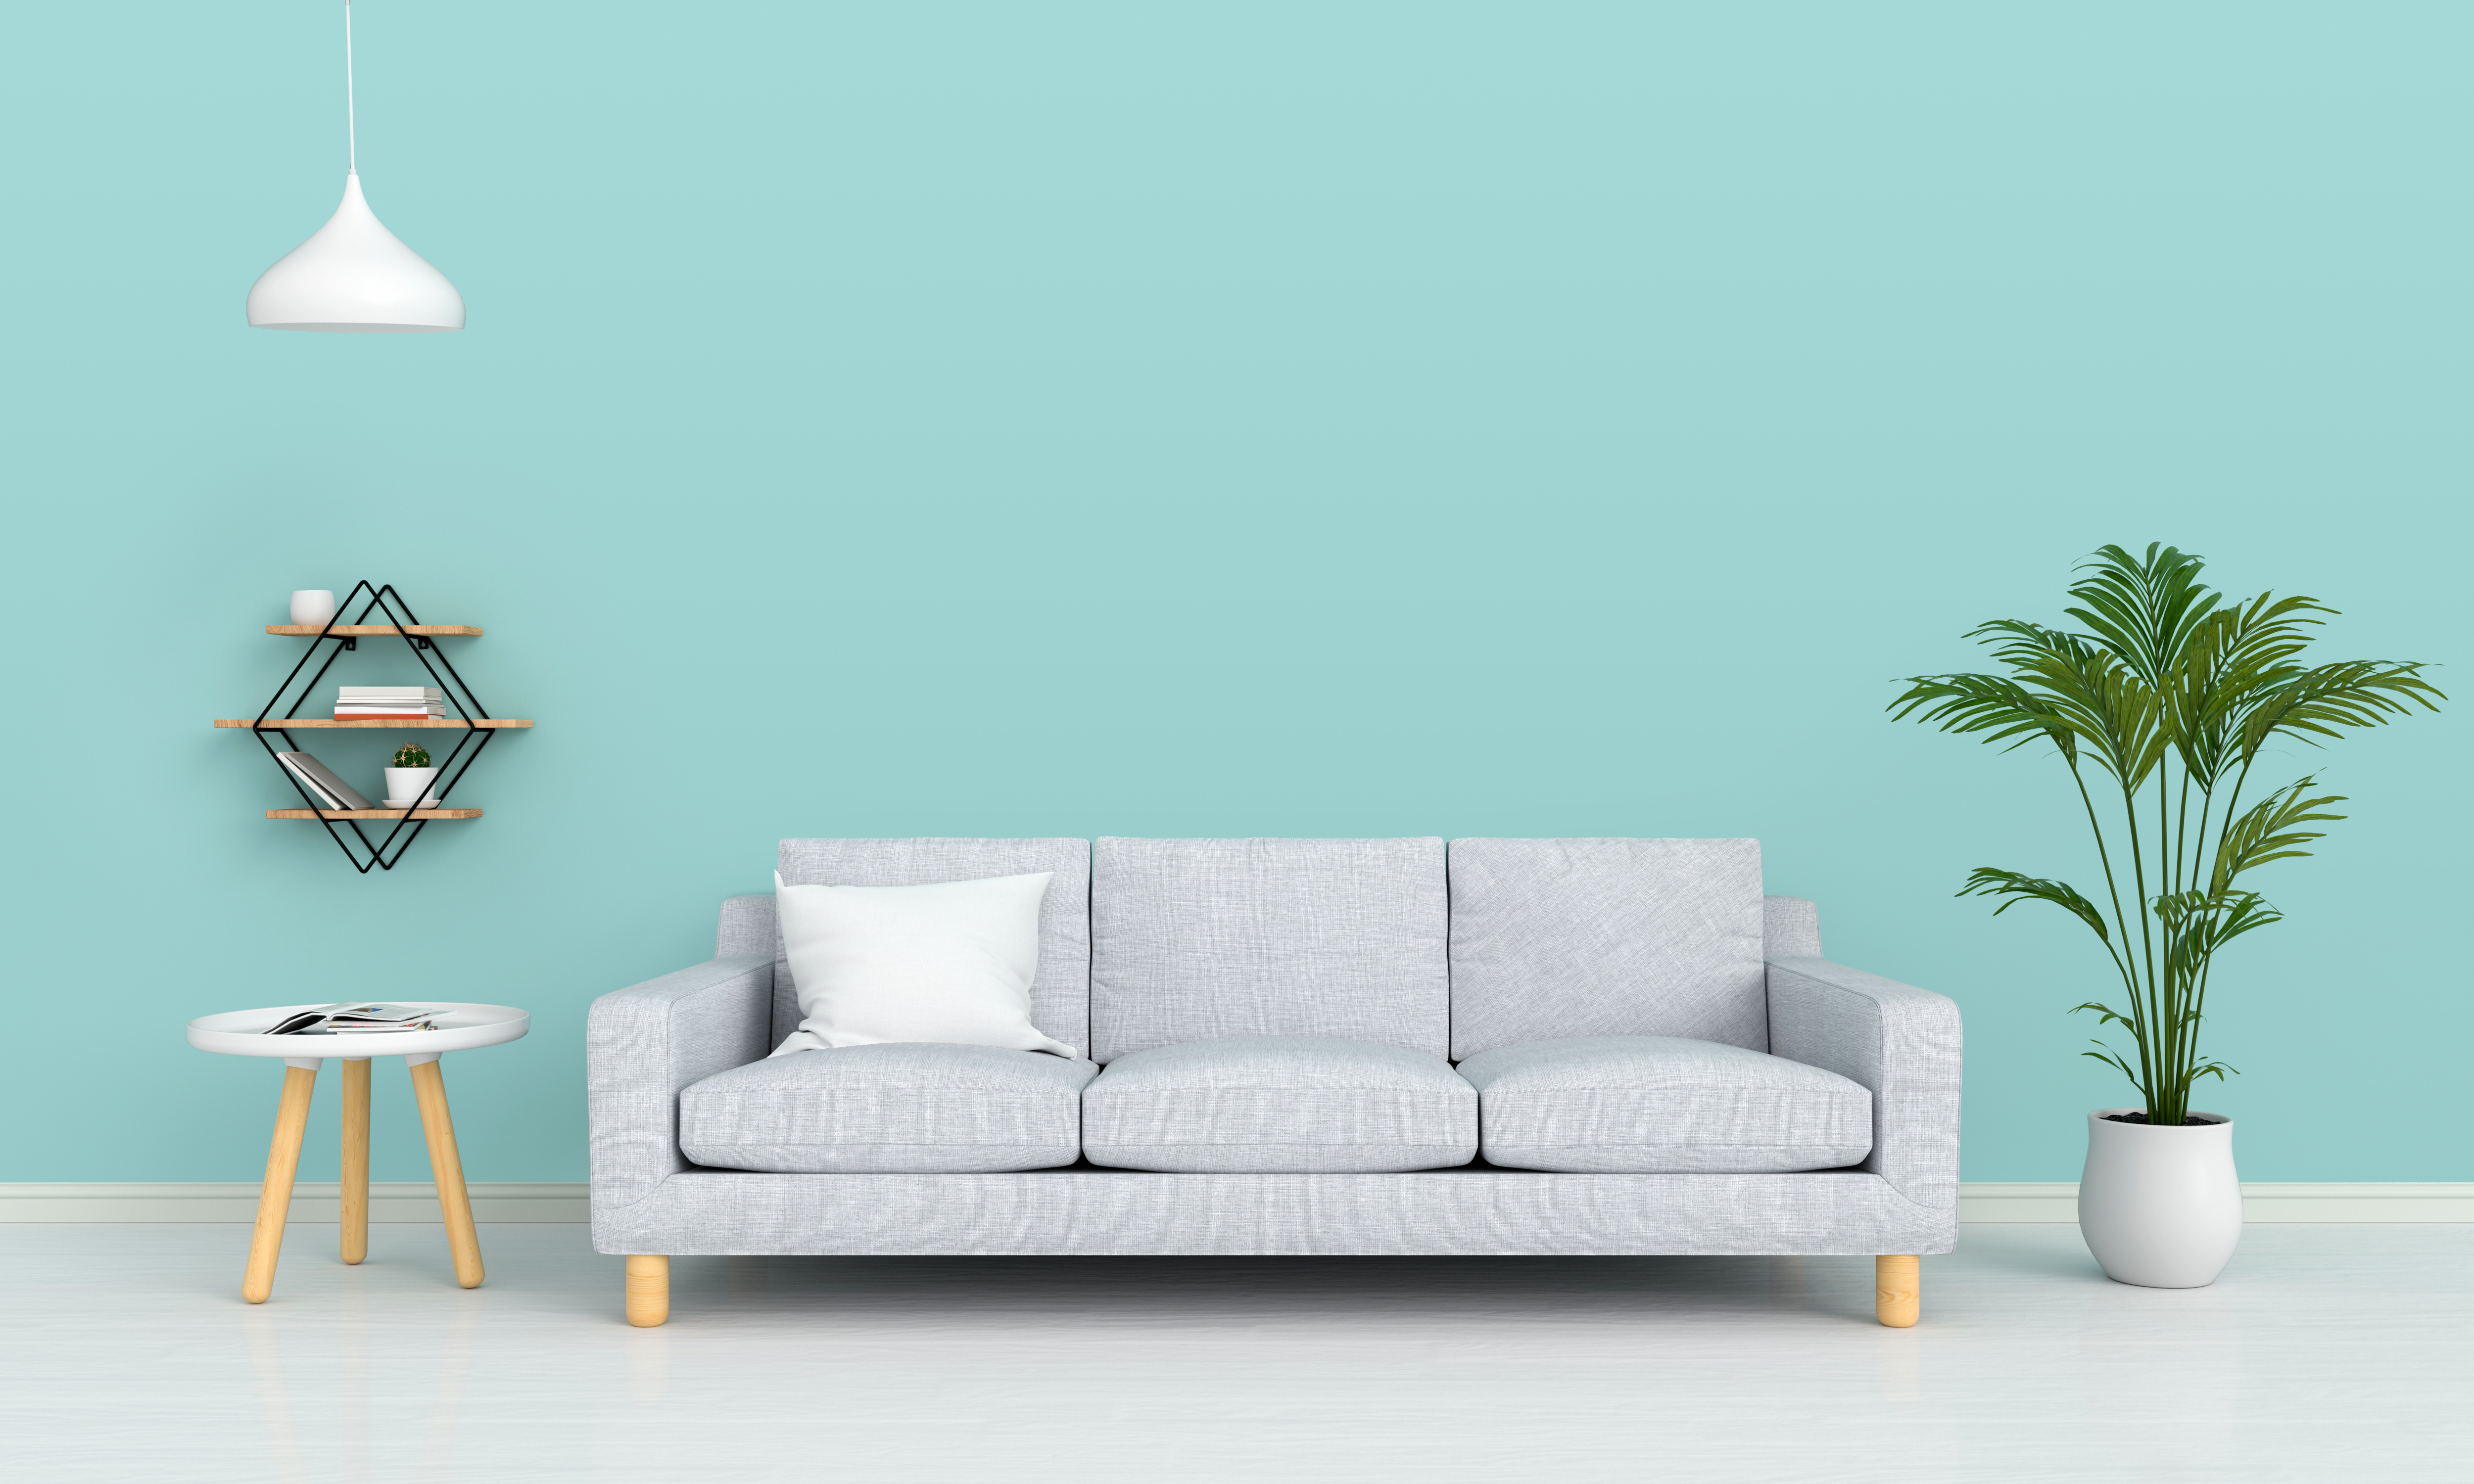 sofa and lamp in living room for mockup, 3D rendering